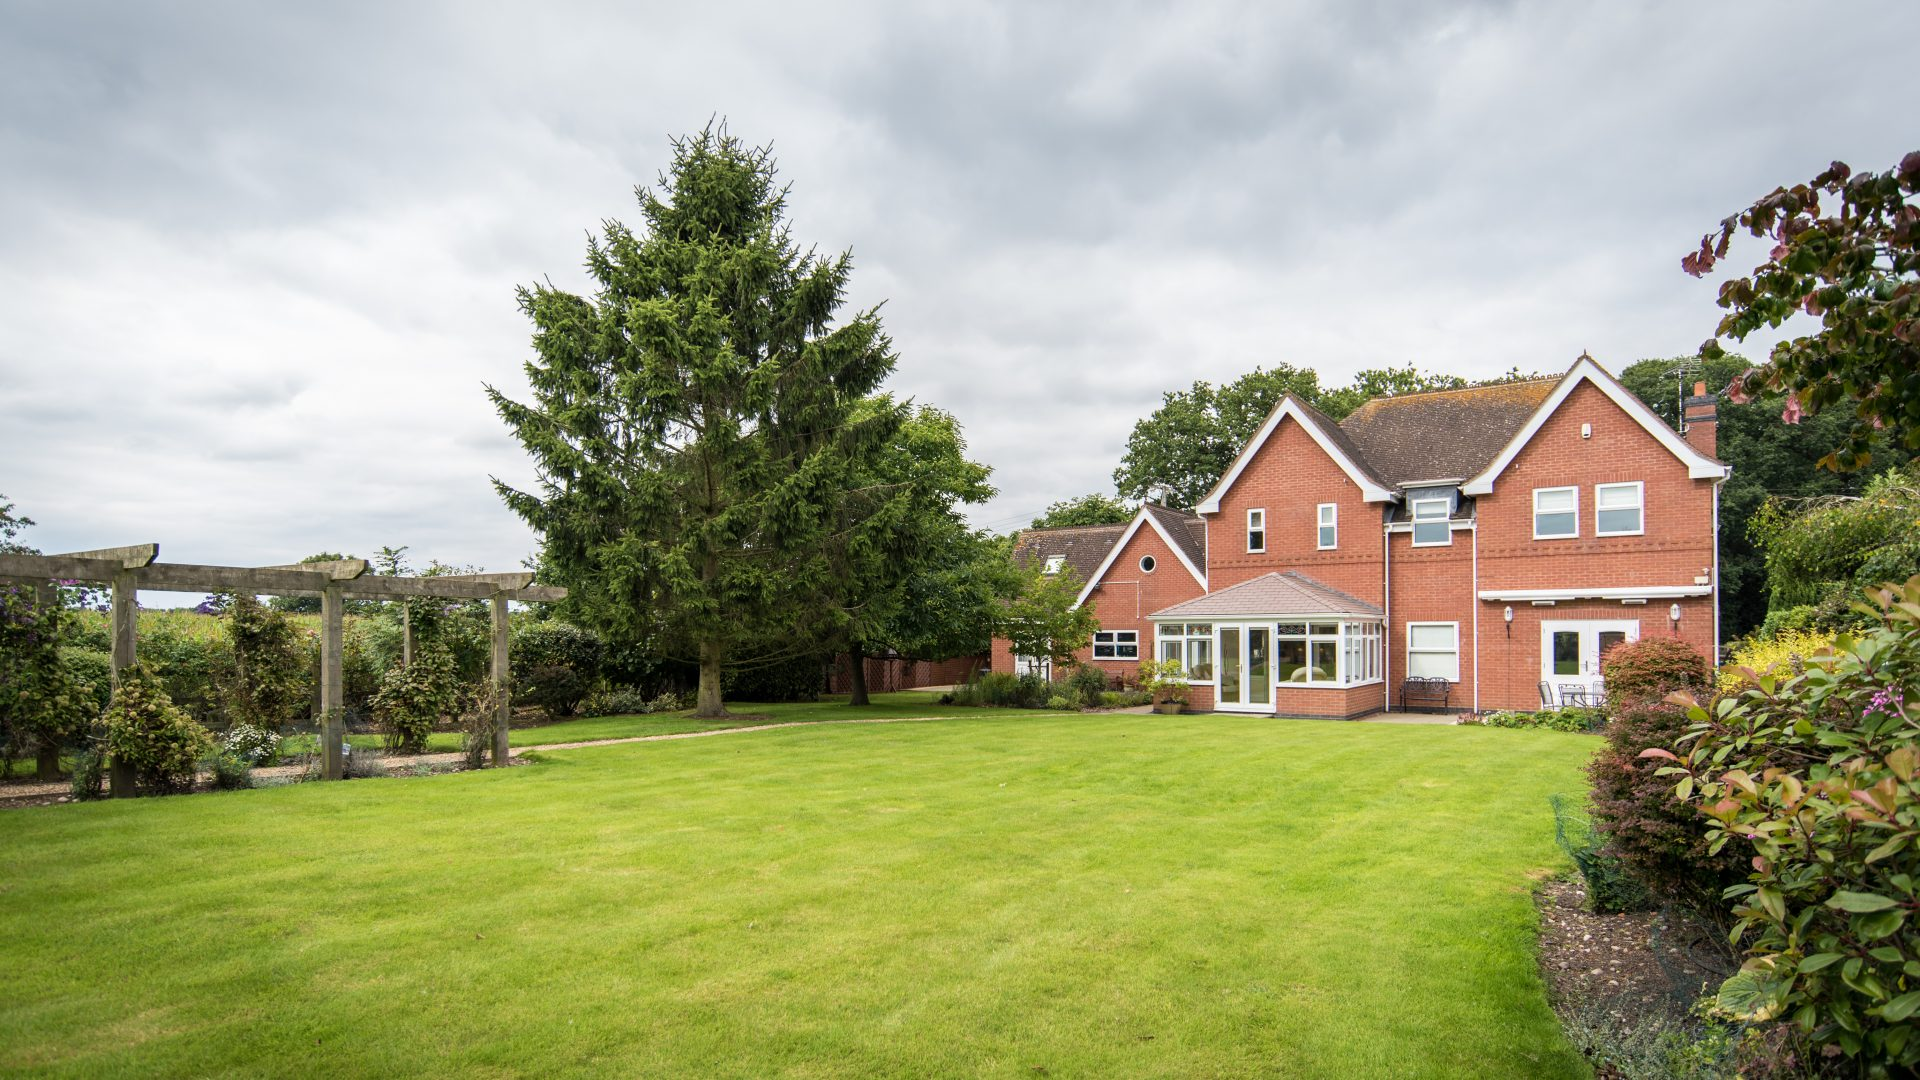 Browns Green Lodge, Tanworth in Arden for sale with Mr and Mrs Clarke estate agent